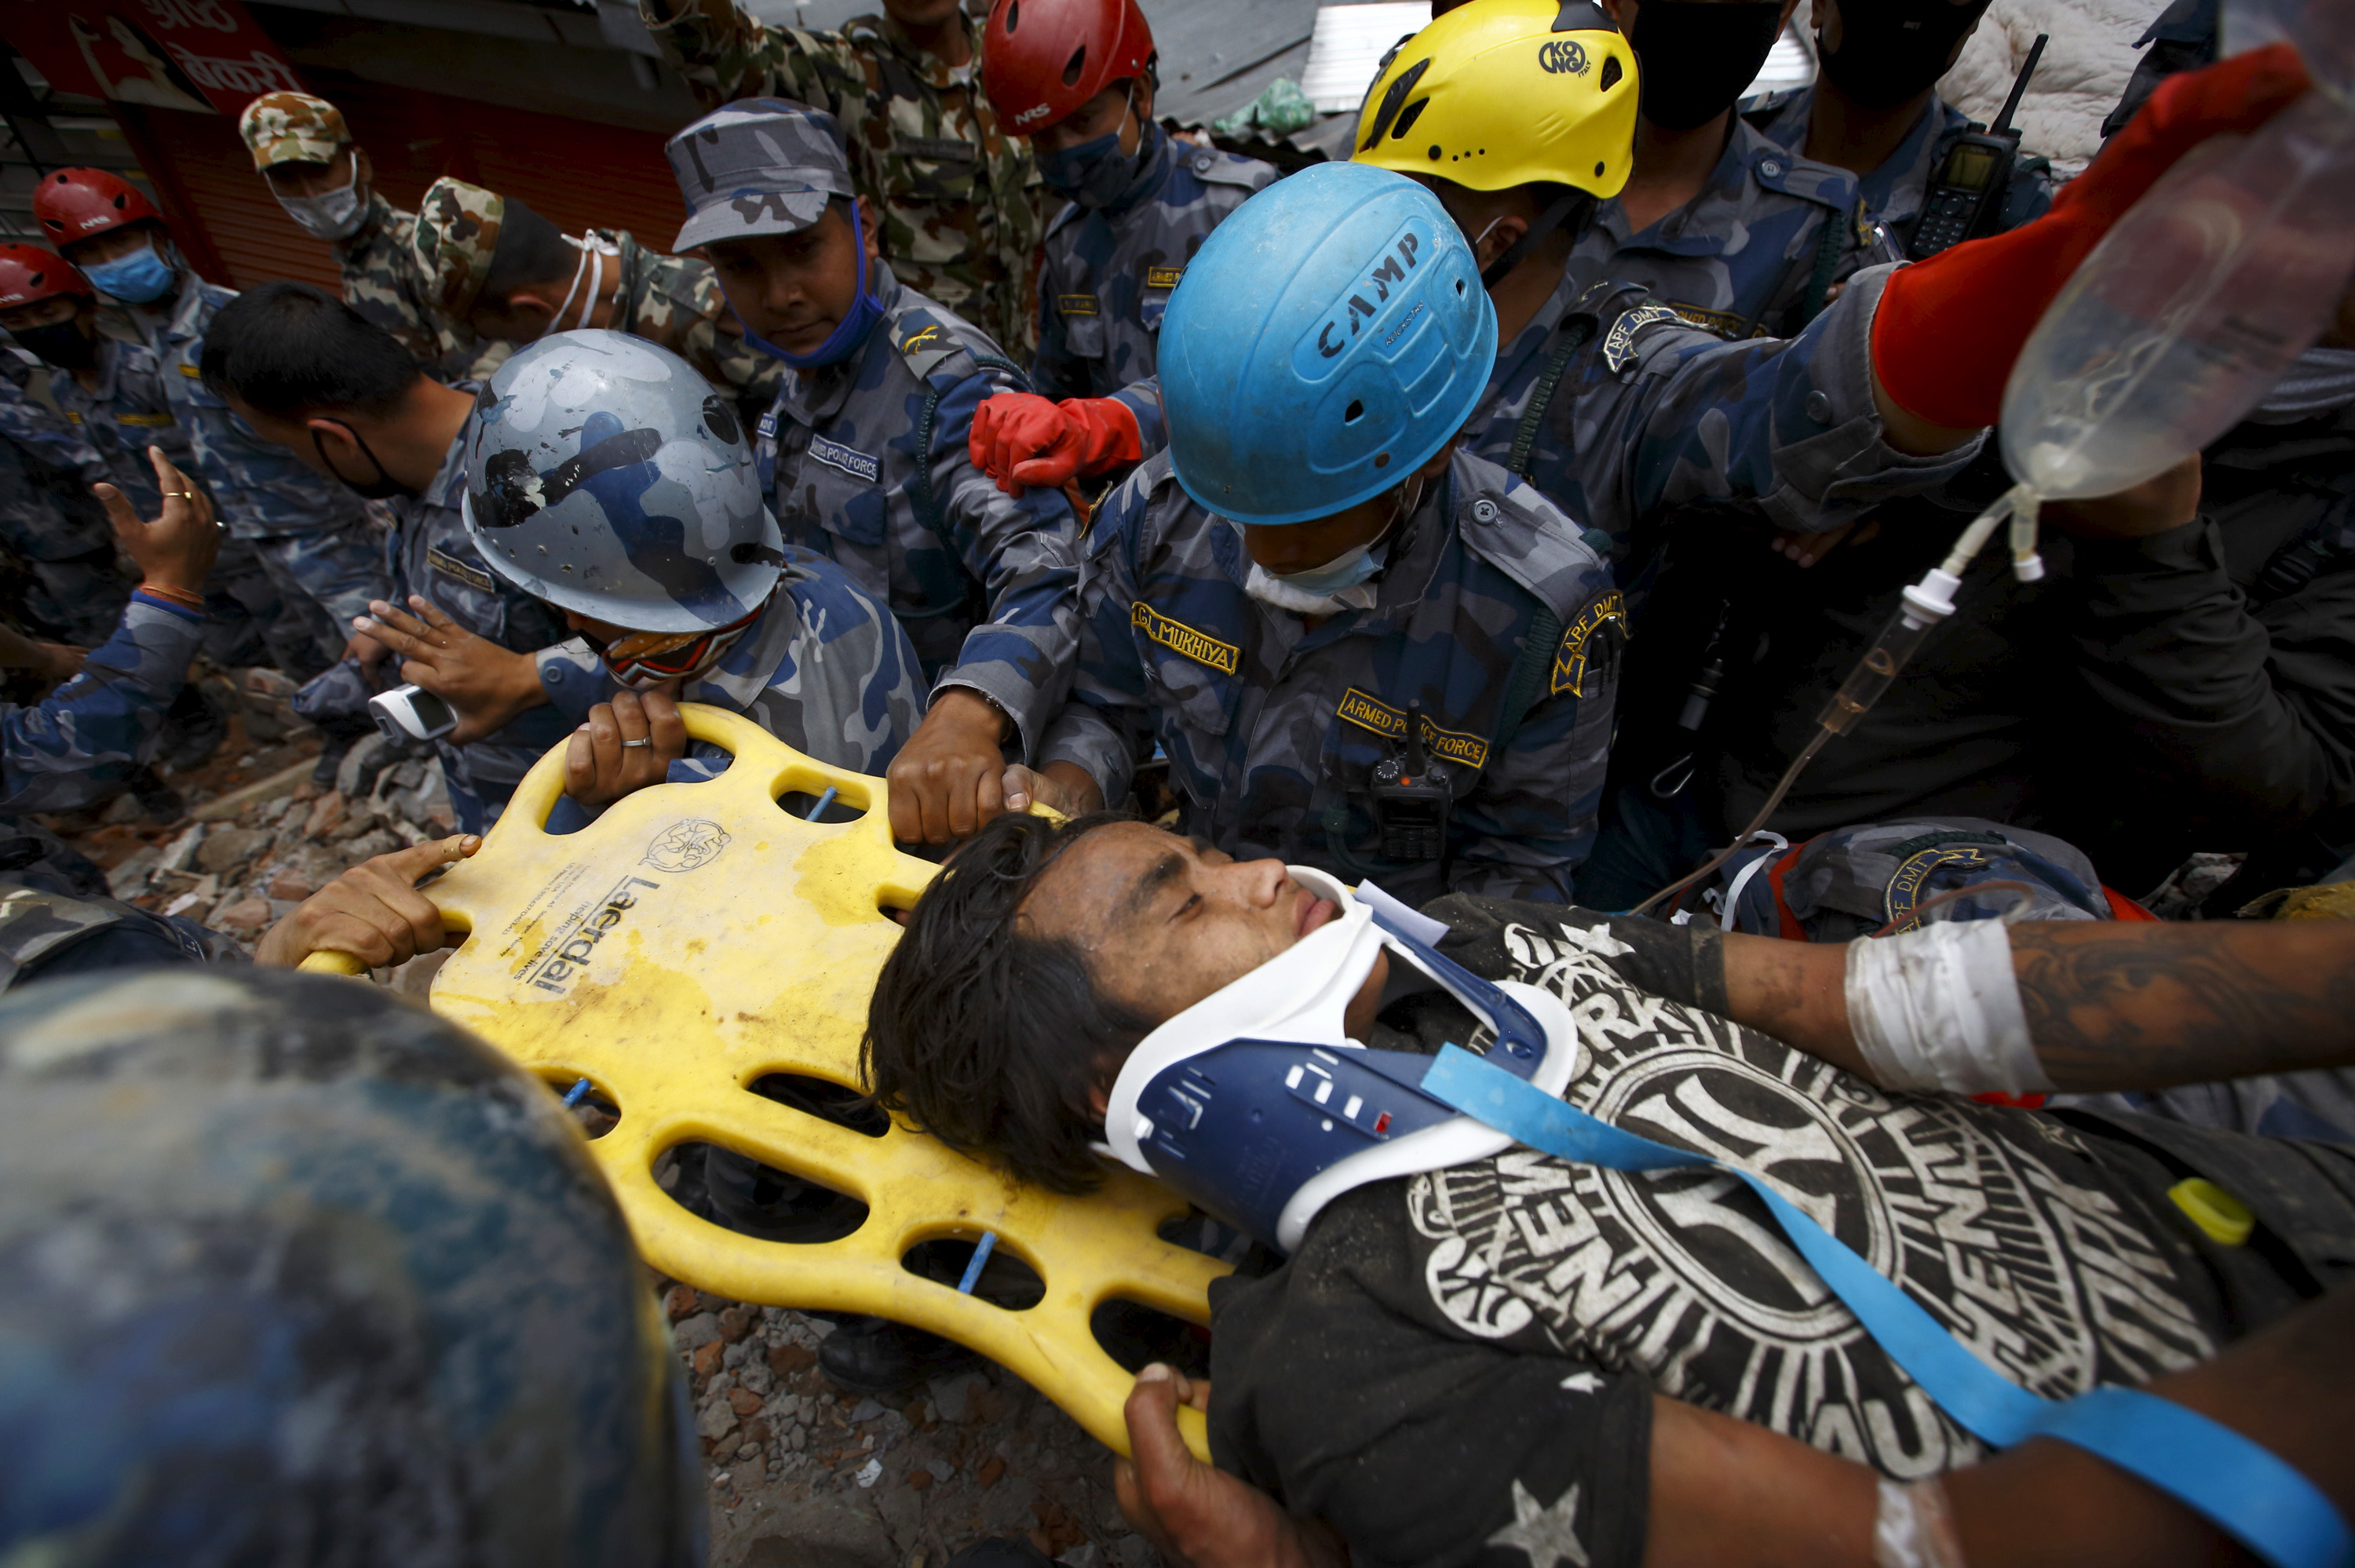 Earthquake survivor Pemba Tamang, 18, is rescued by the Armed Police Force from the collapsed Hilton Hotel, a result of an earthquake in Kathmandu, Nepal April 30, 2015